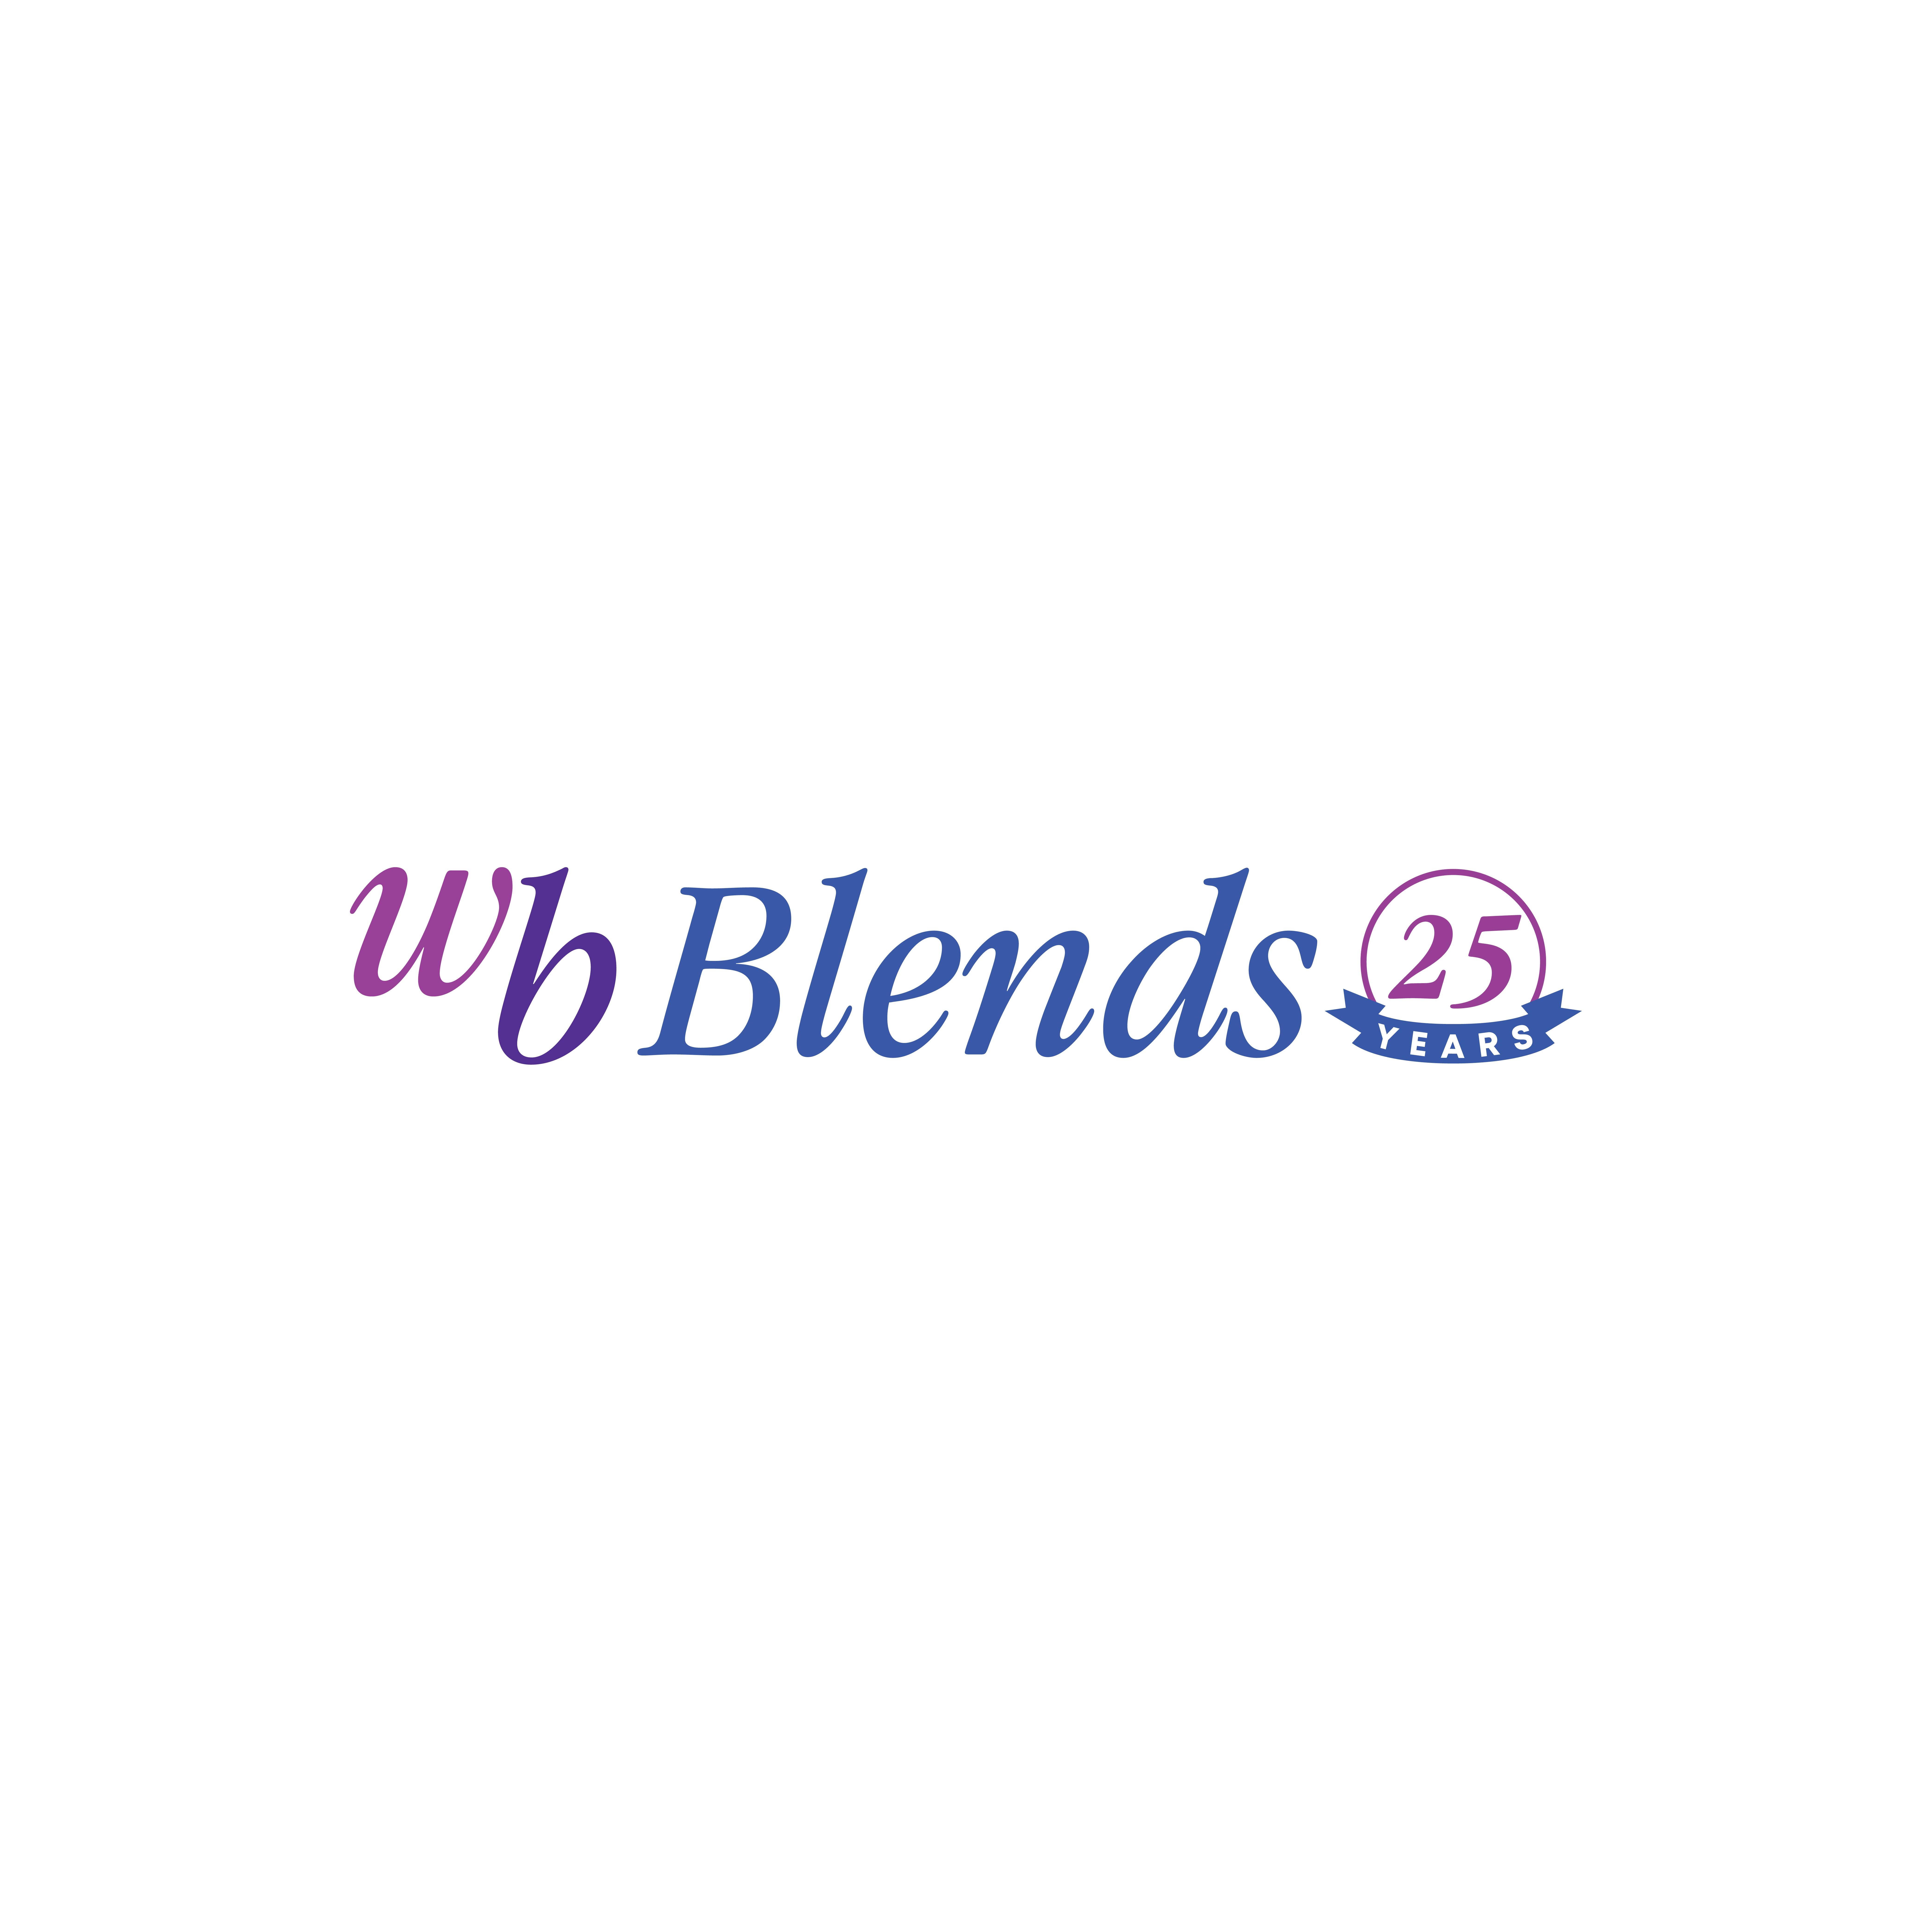 WB Blends To Attend The 2021 SupplySide West & Food Ingredients North America Tradeshow